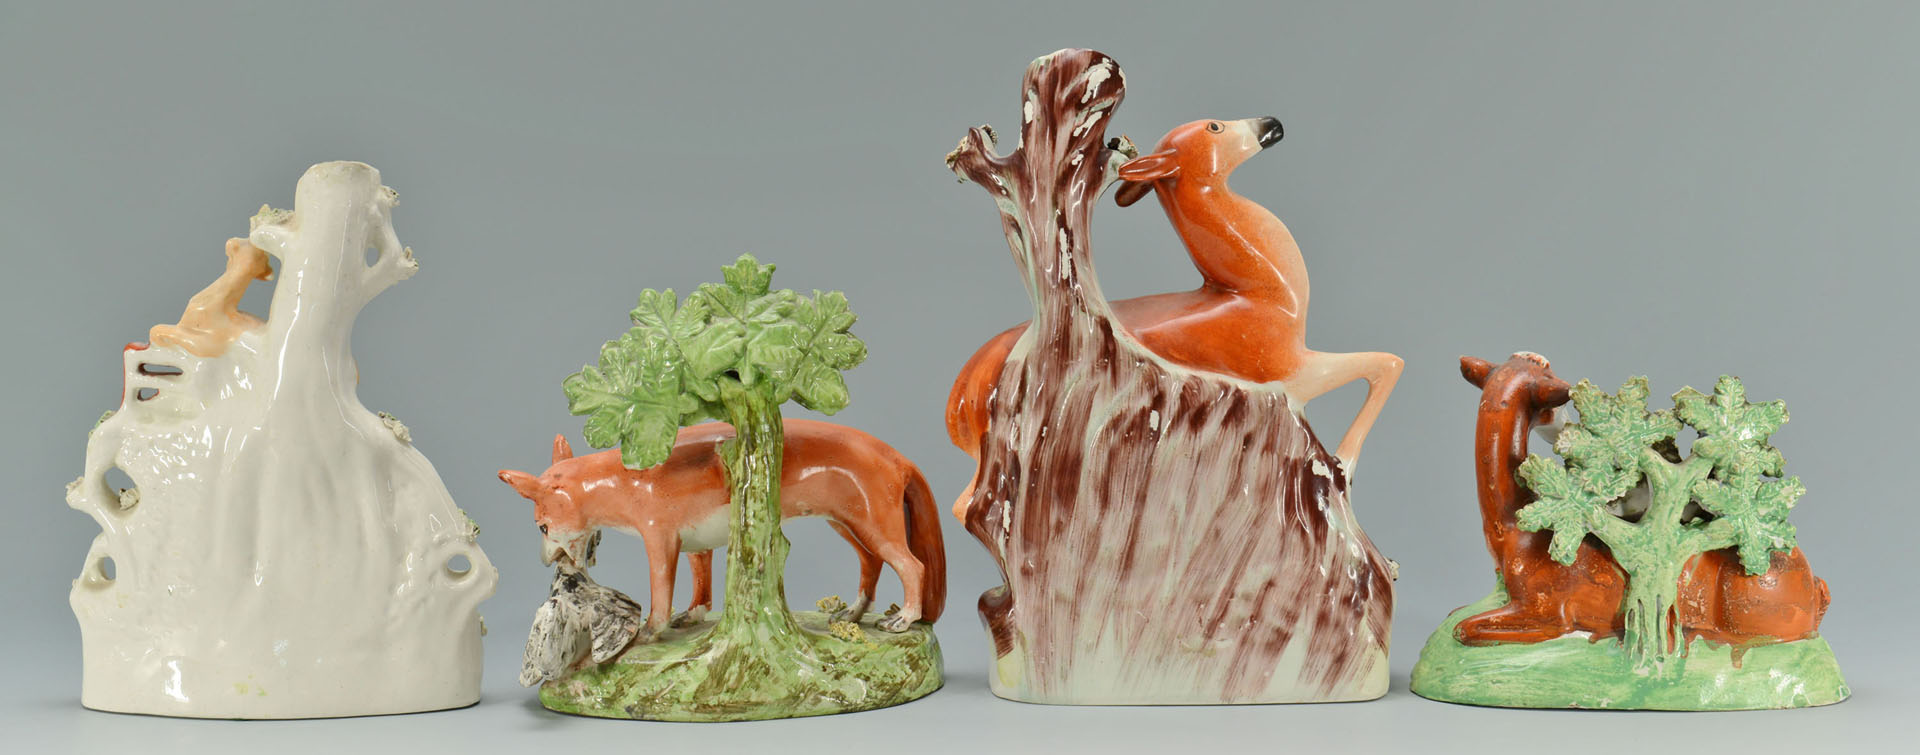 Lot 278: 4 Staffordshire Pottery Animal Figures